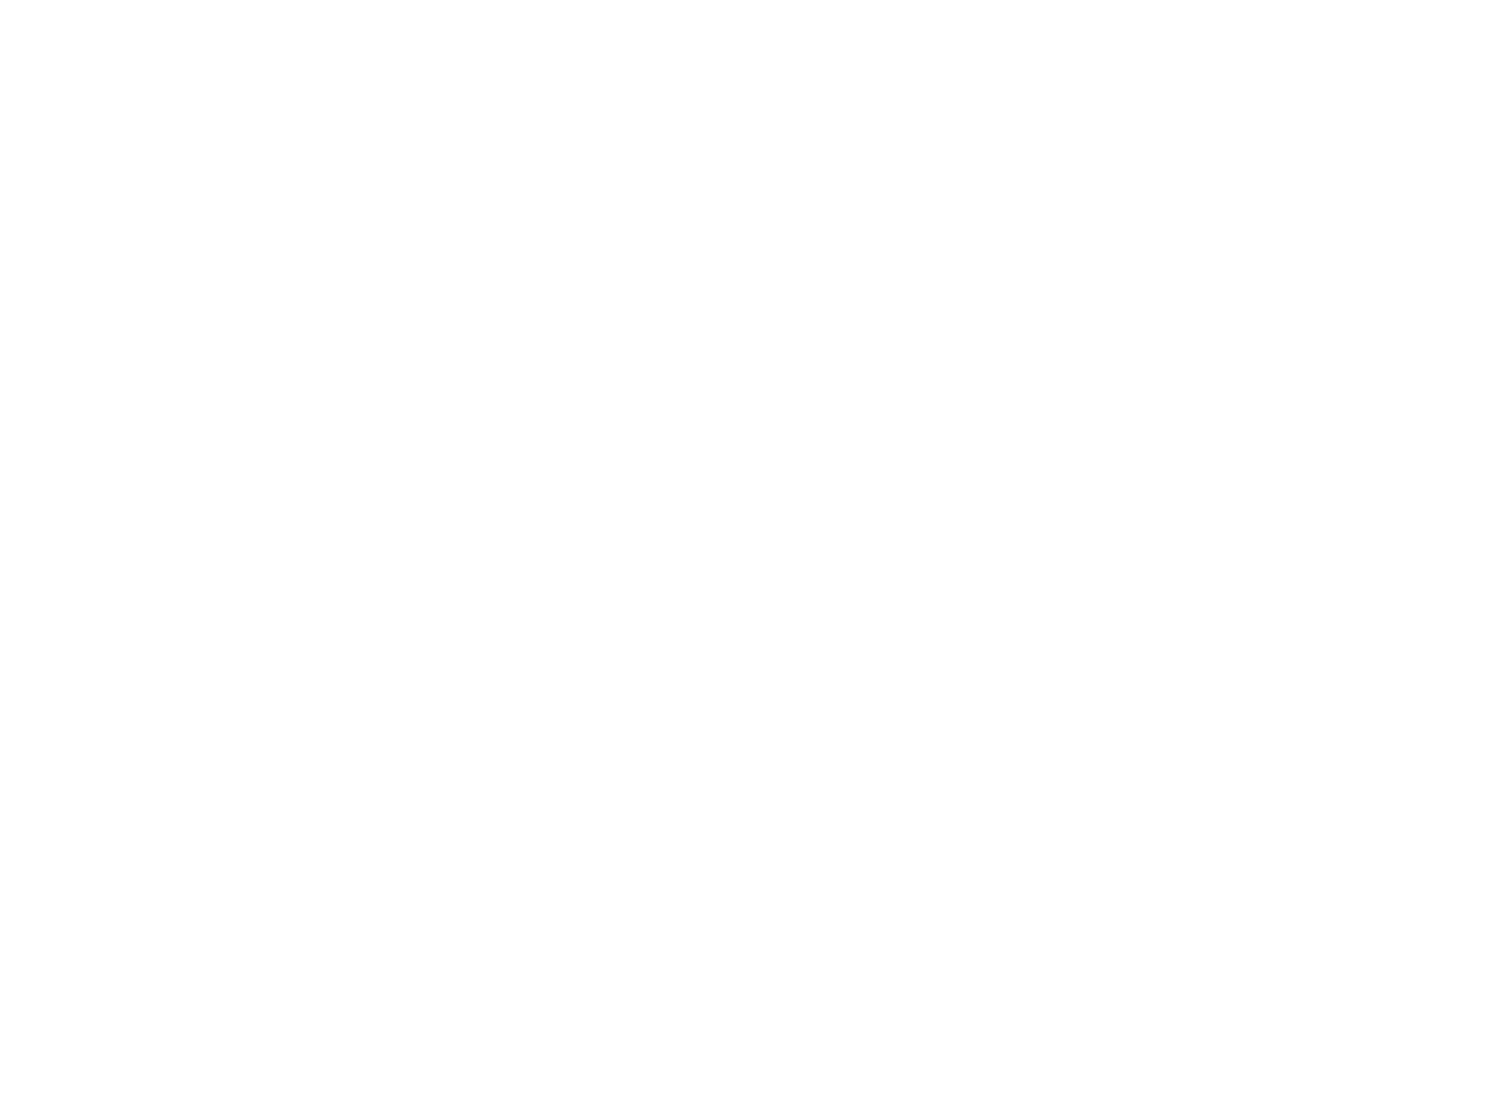 ALTITUDE CUSTOM COMPOSITION